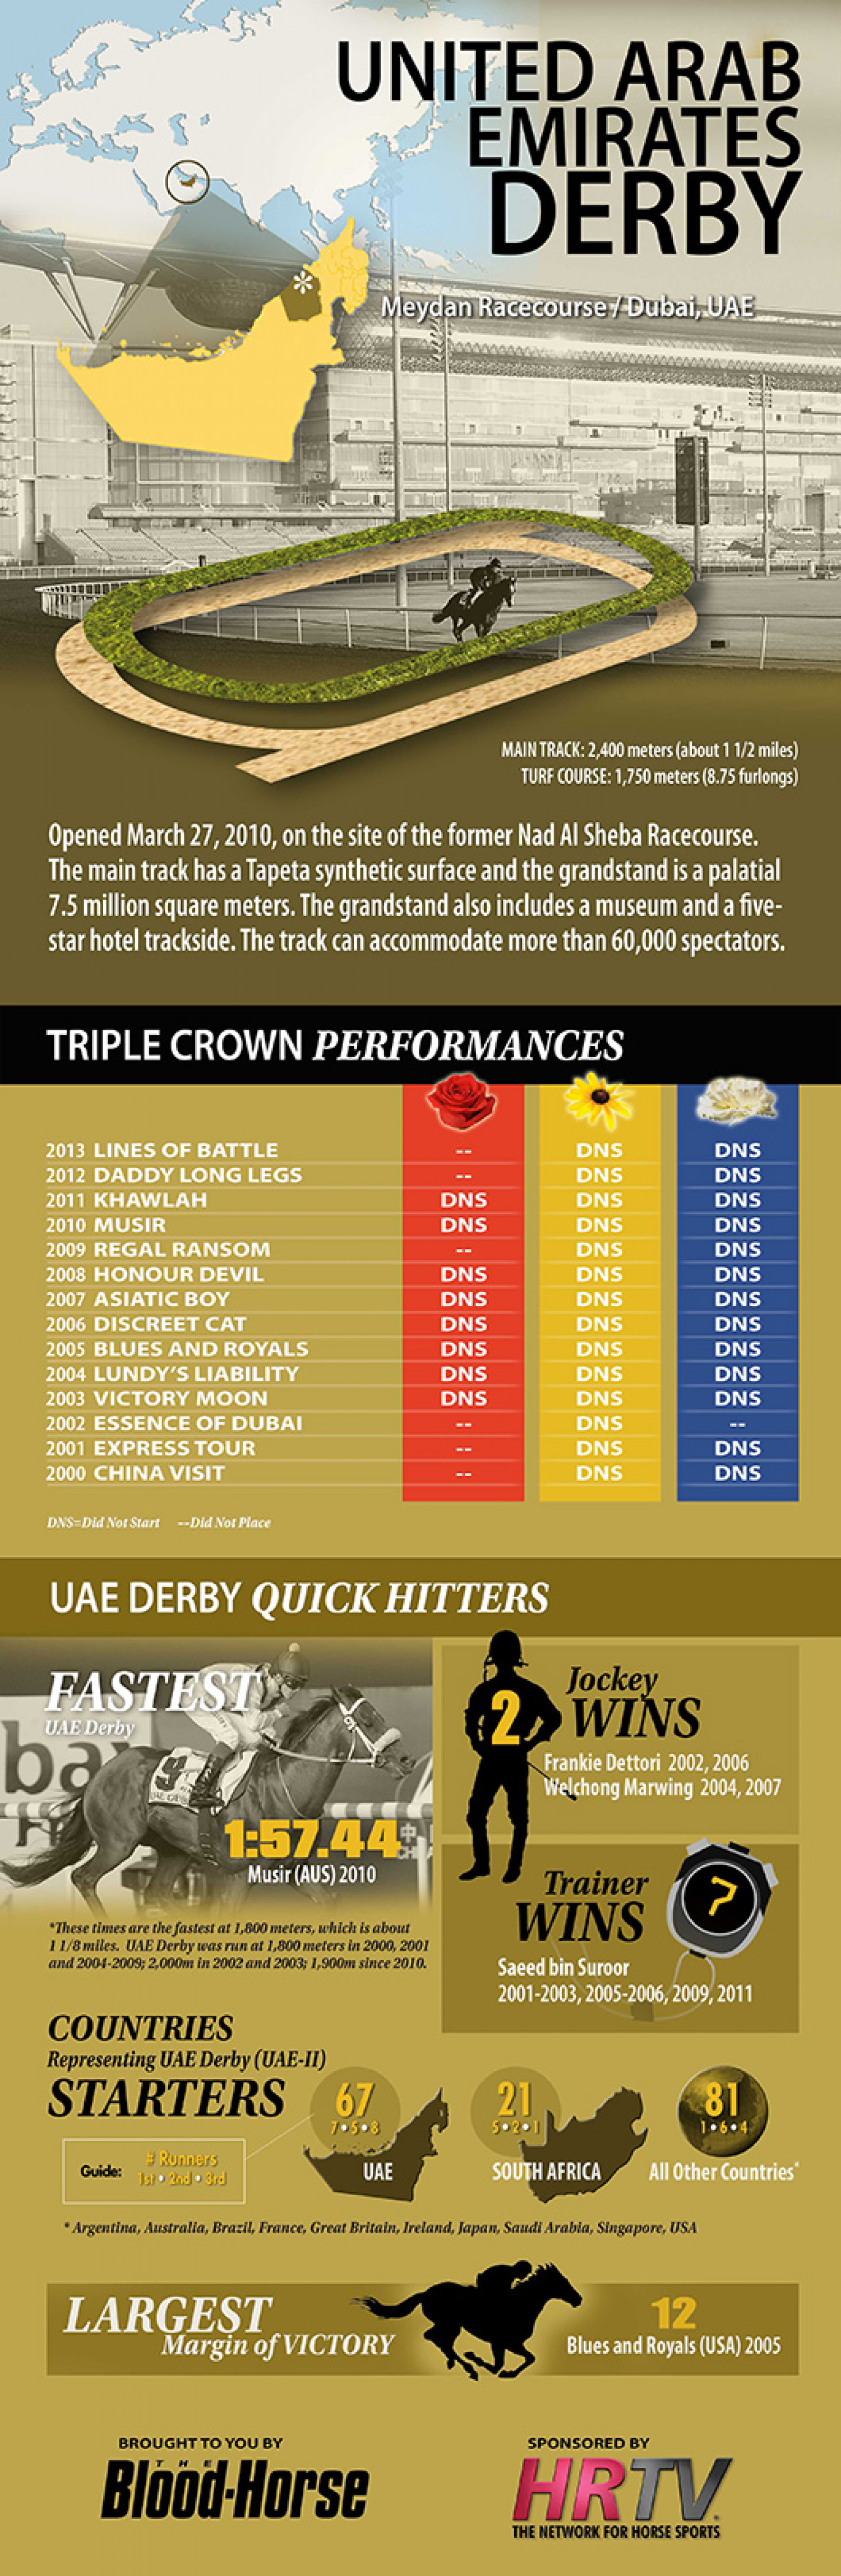 UAE Derby Infographic